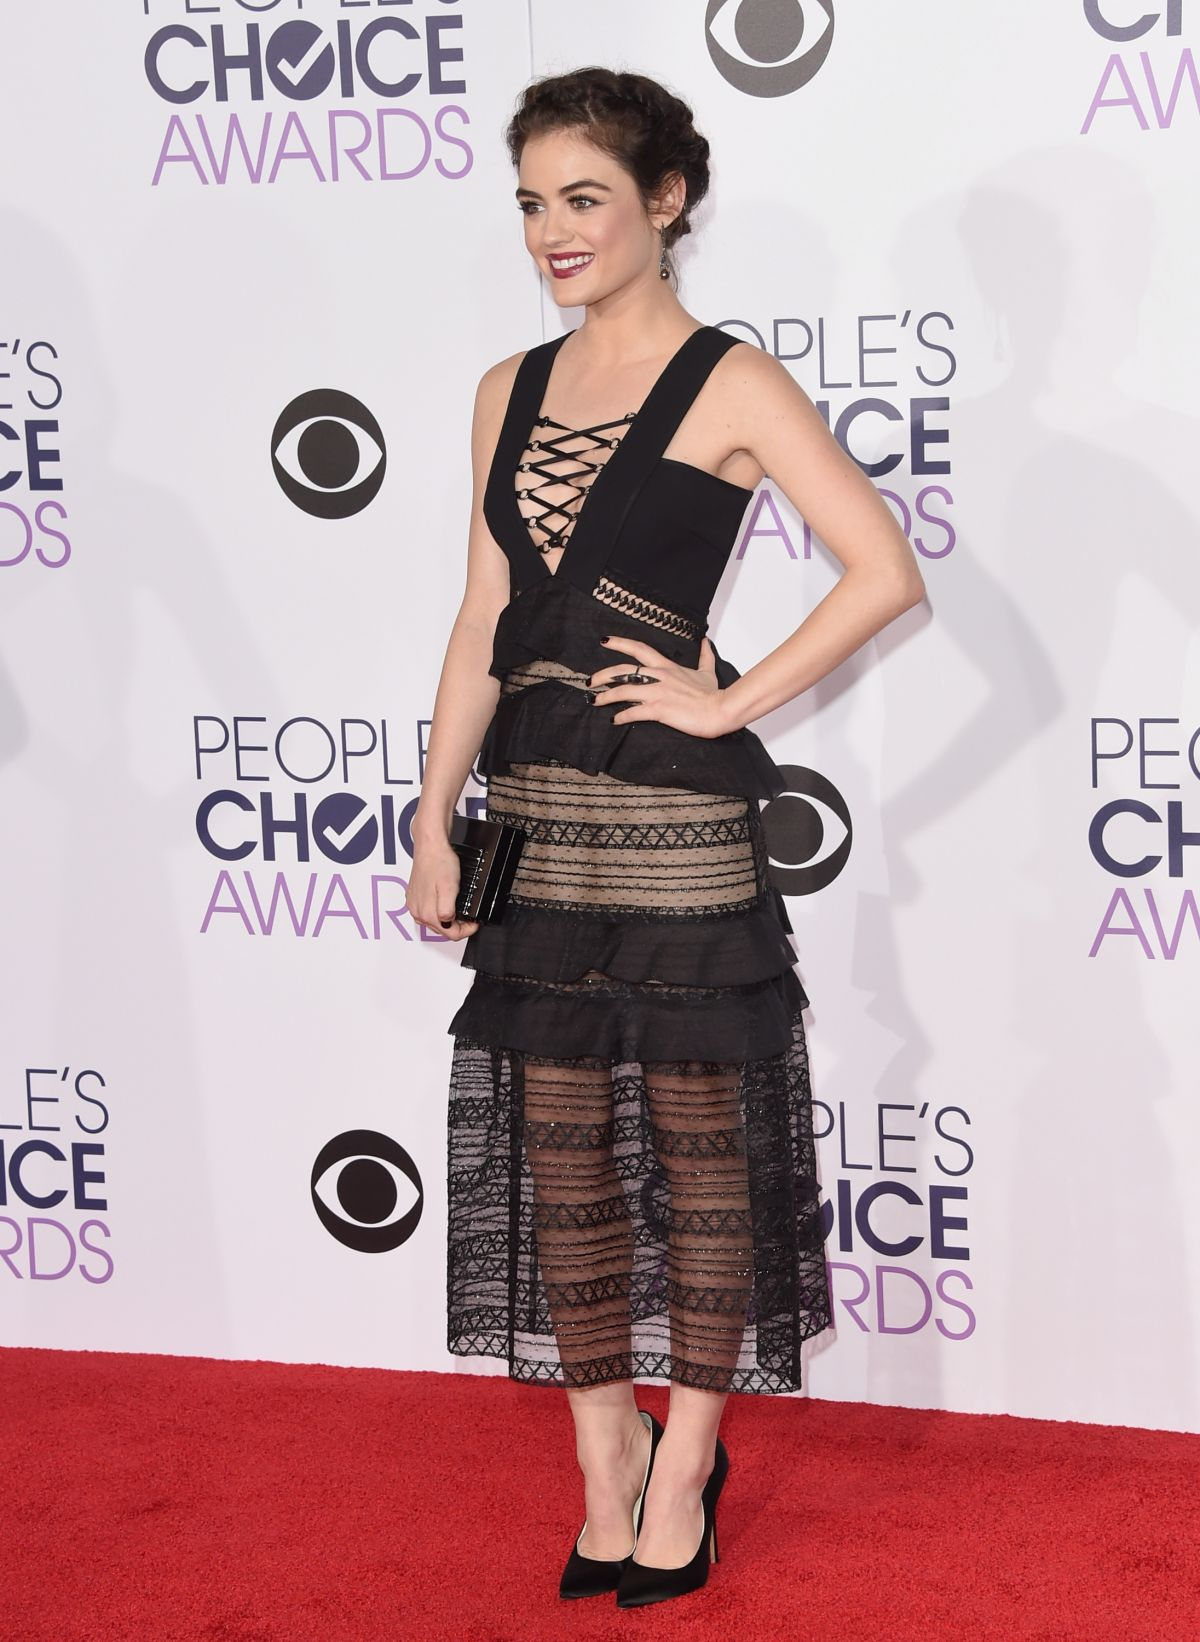 http://www.hawtcelebs.com/wp-content/uploads/2016/01/lucy-hale-at-2016-people-s-choice-awards-in-los-angeles-01-06-2016_9.jpg